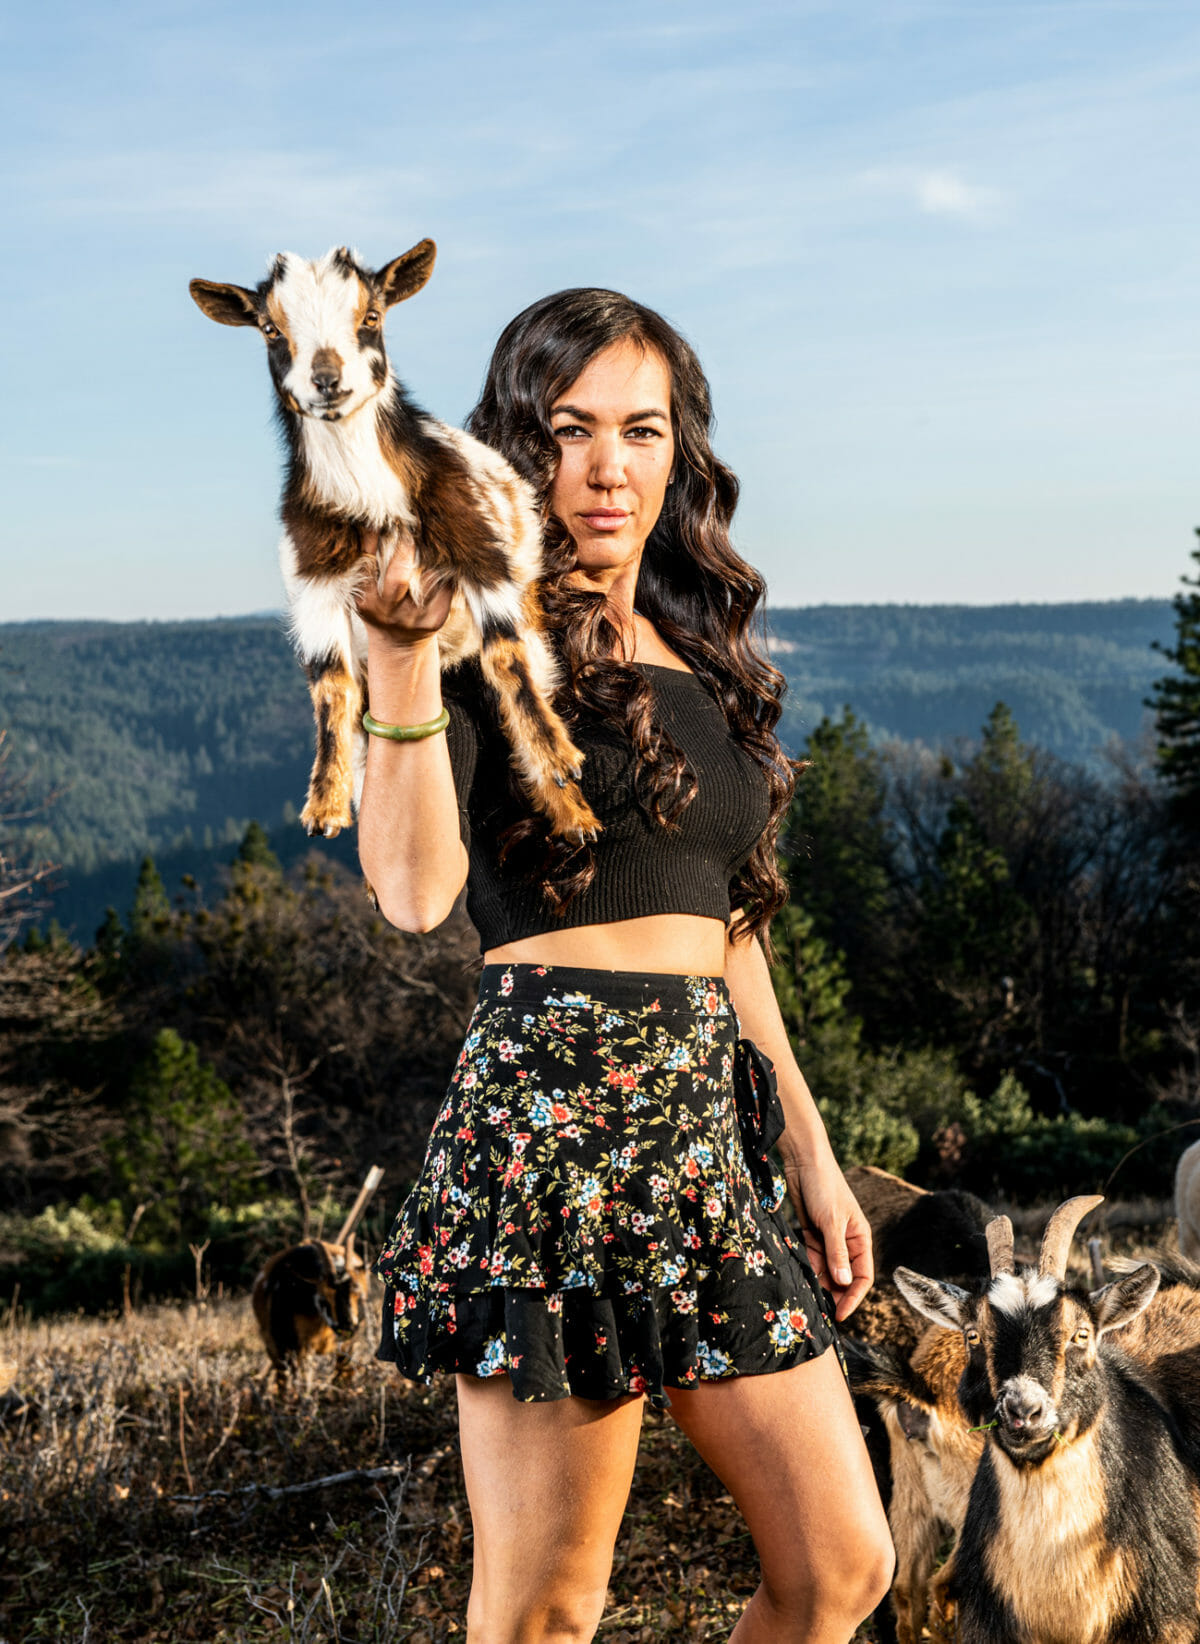 Doris Molakides with goat.